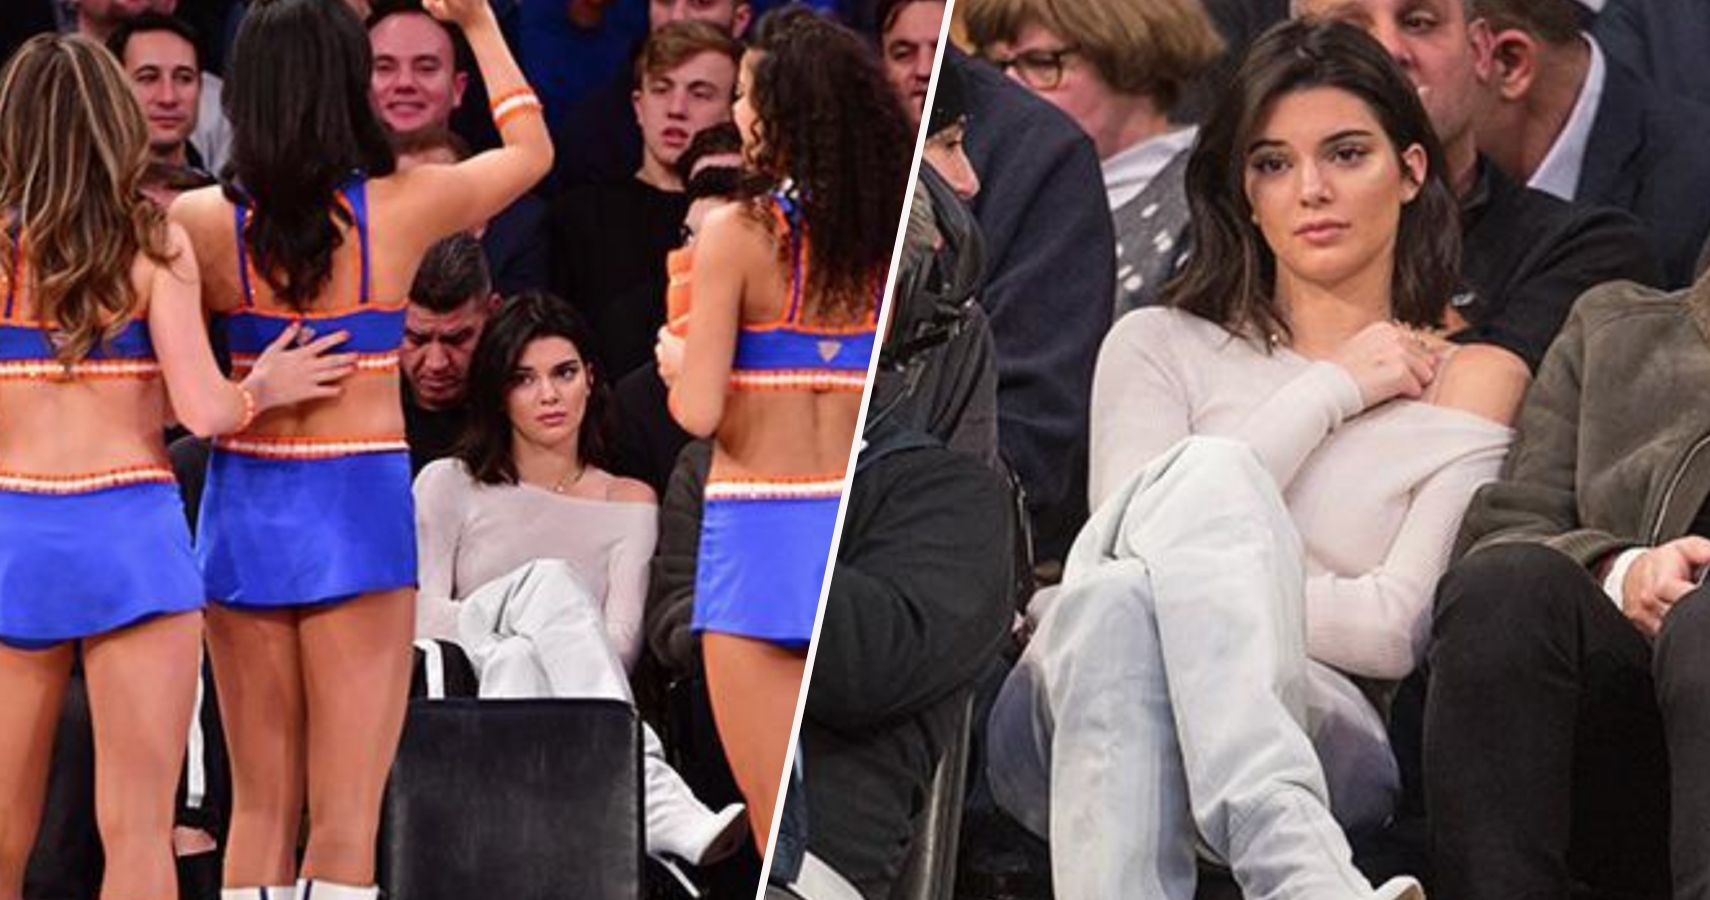 20 Candids That Show How These Celebs Really Feel